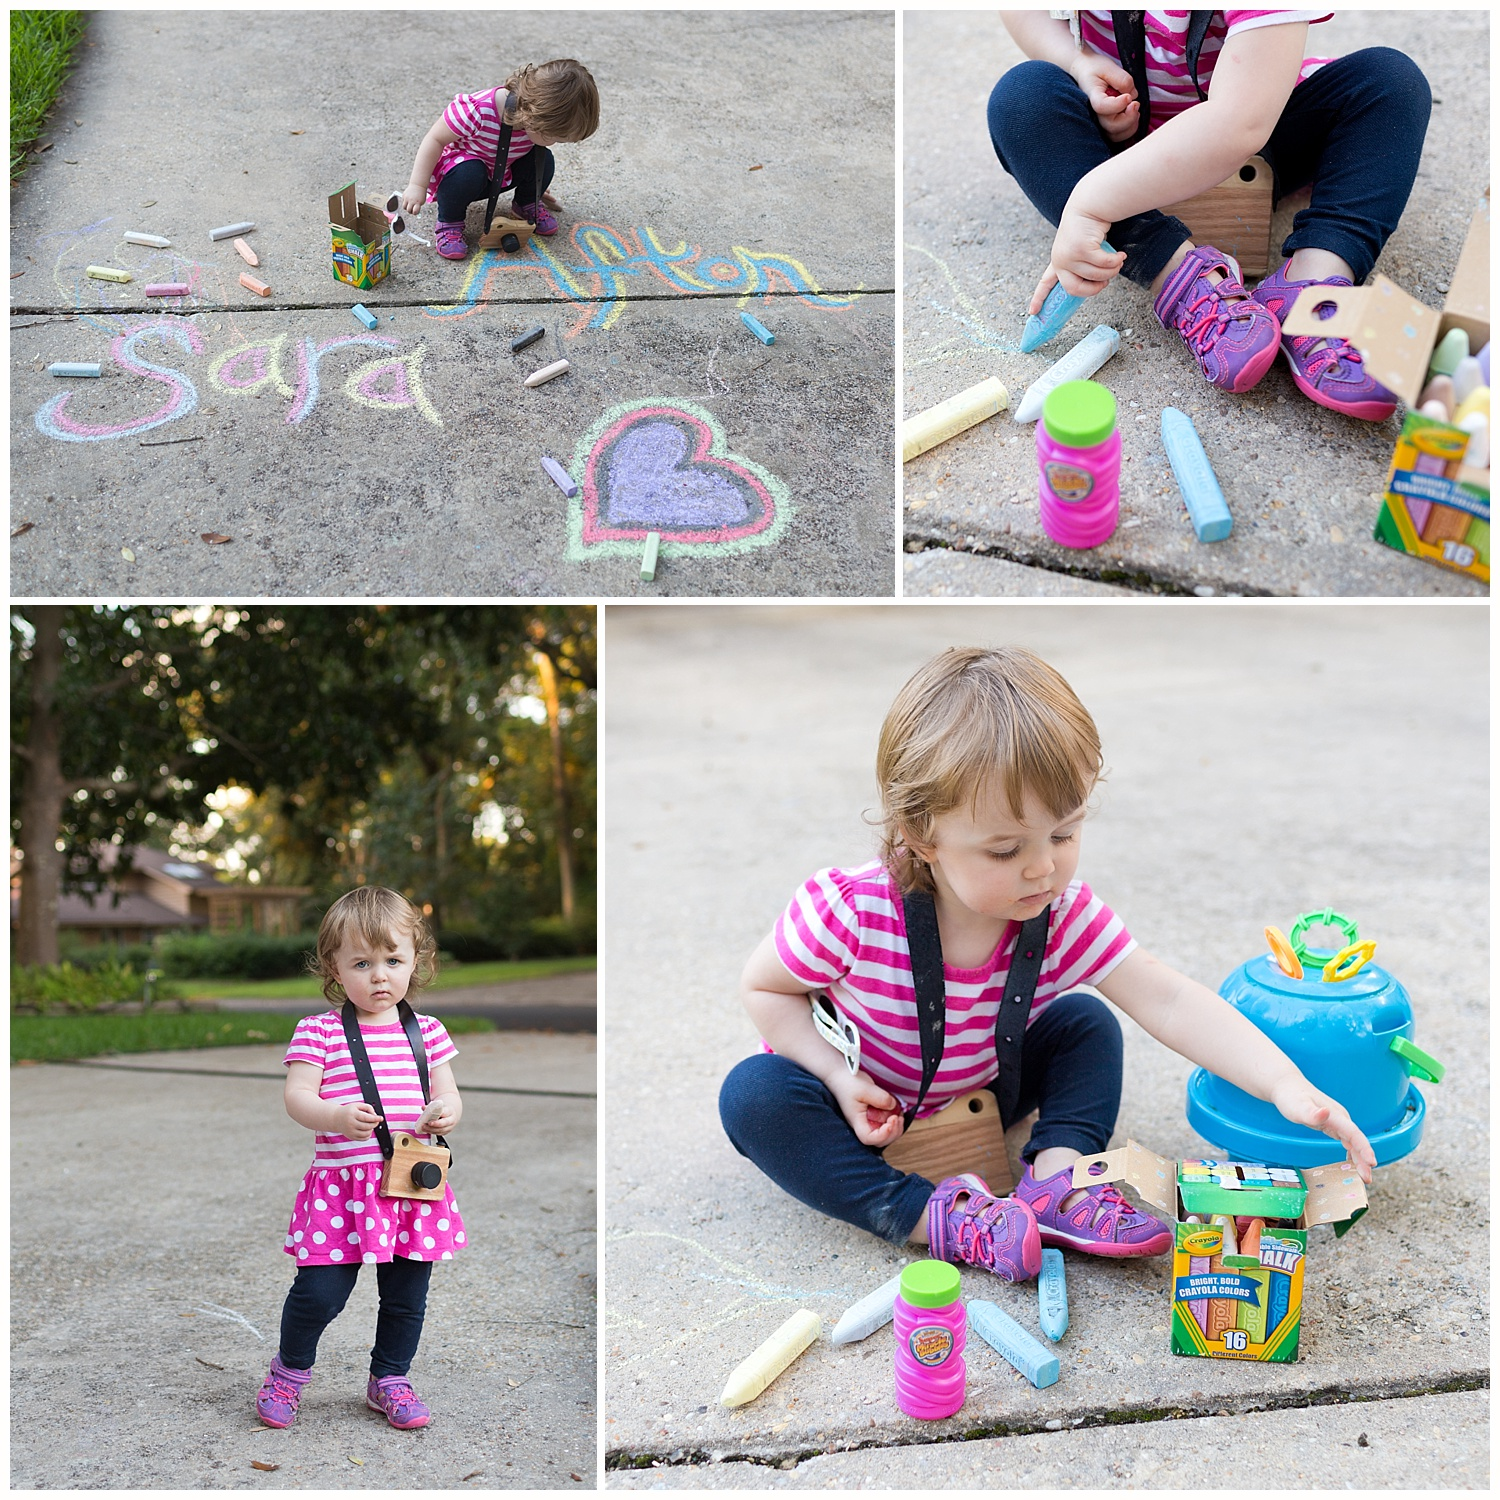 little girl playing with sidewalk chalk, bubbles, toy camera